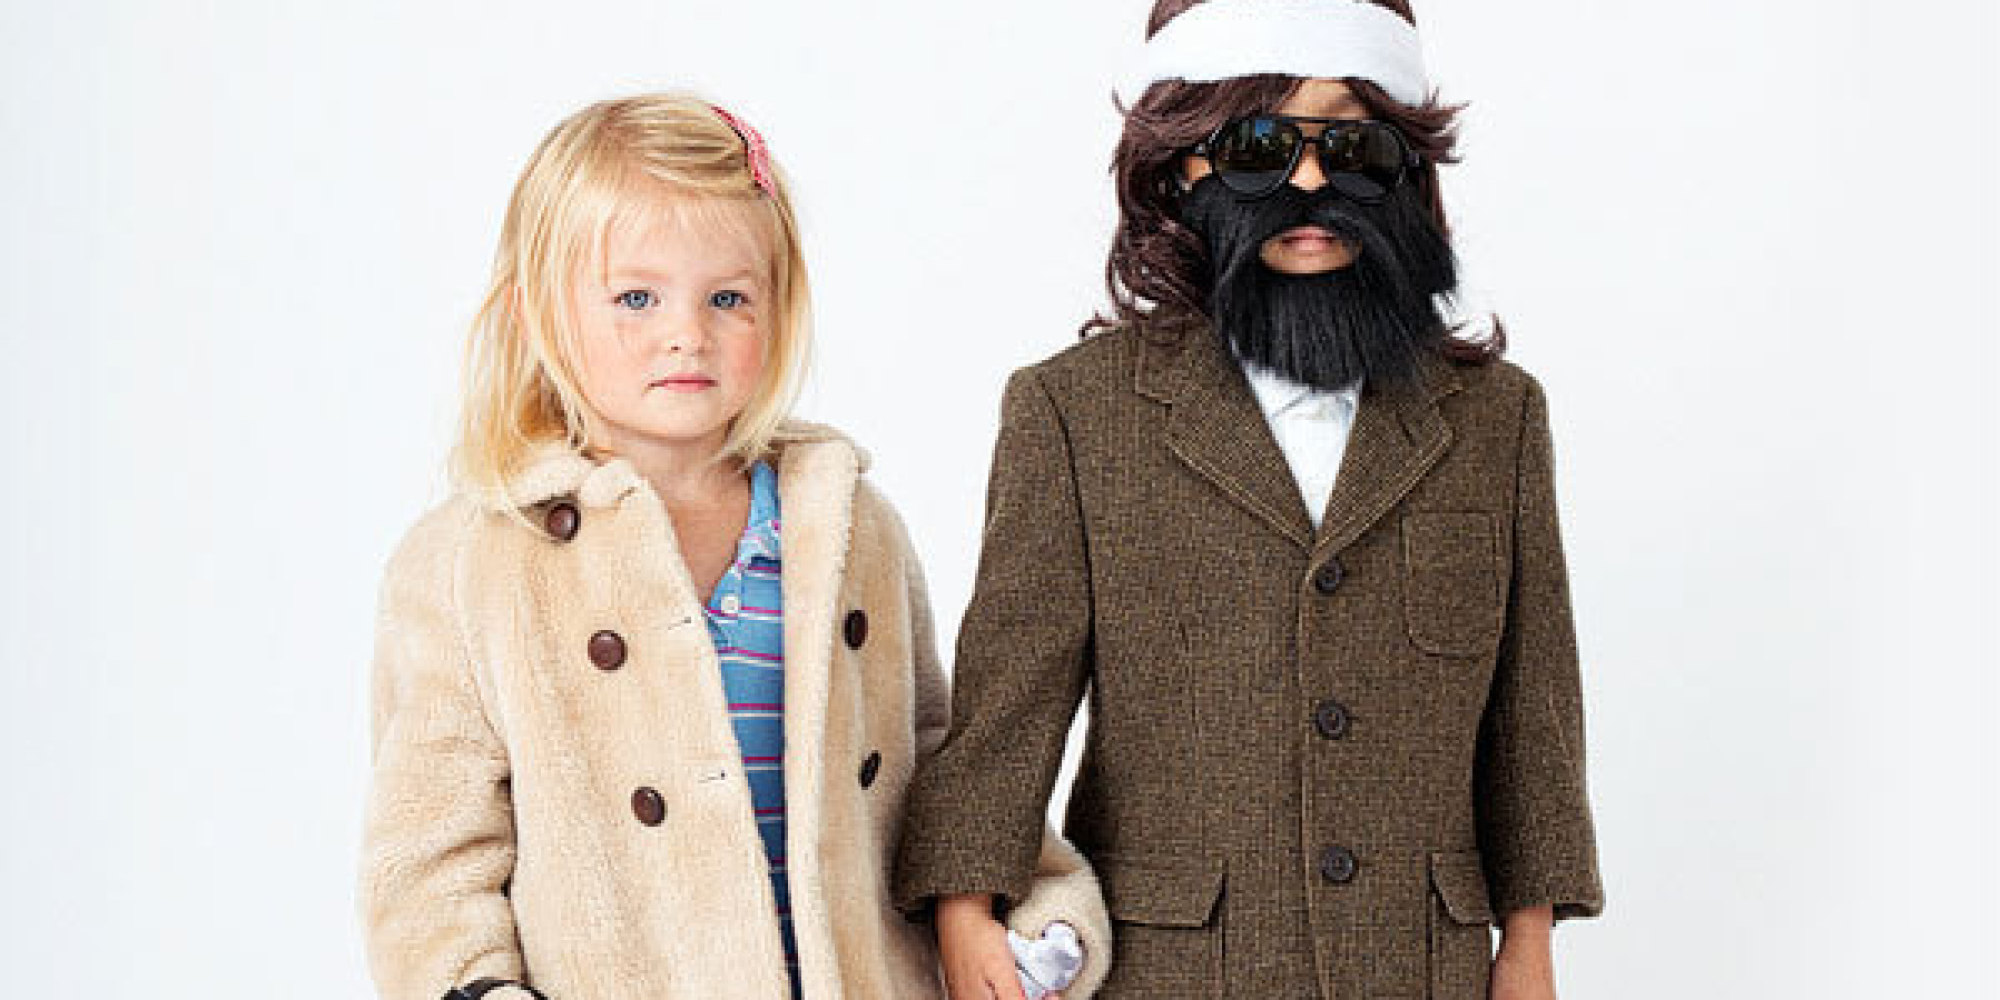 The Ultimate Guide To Dressing Your Hipster Child On ...